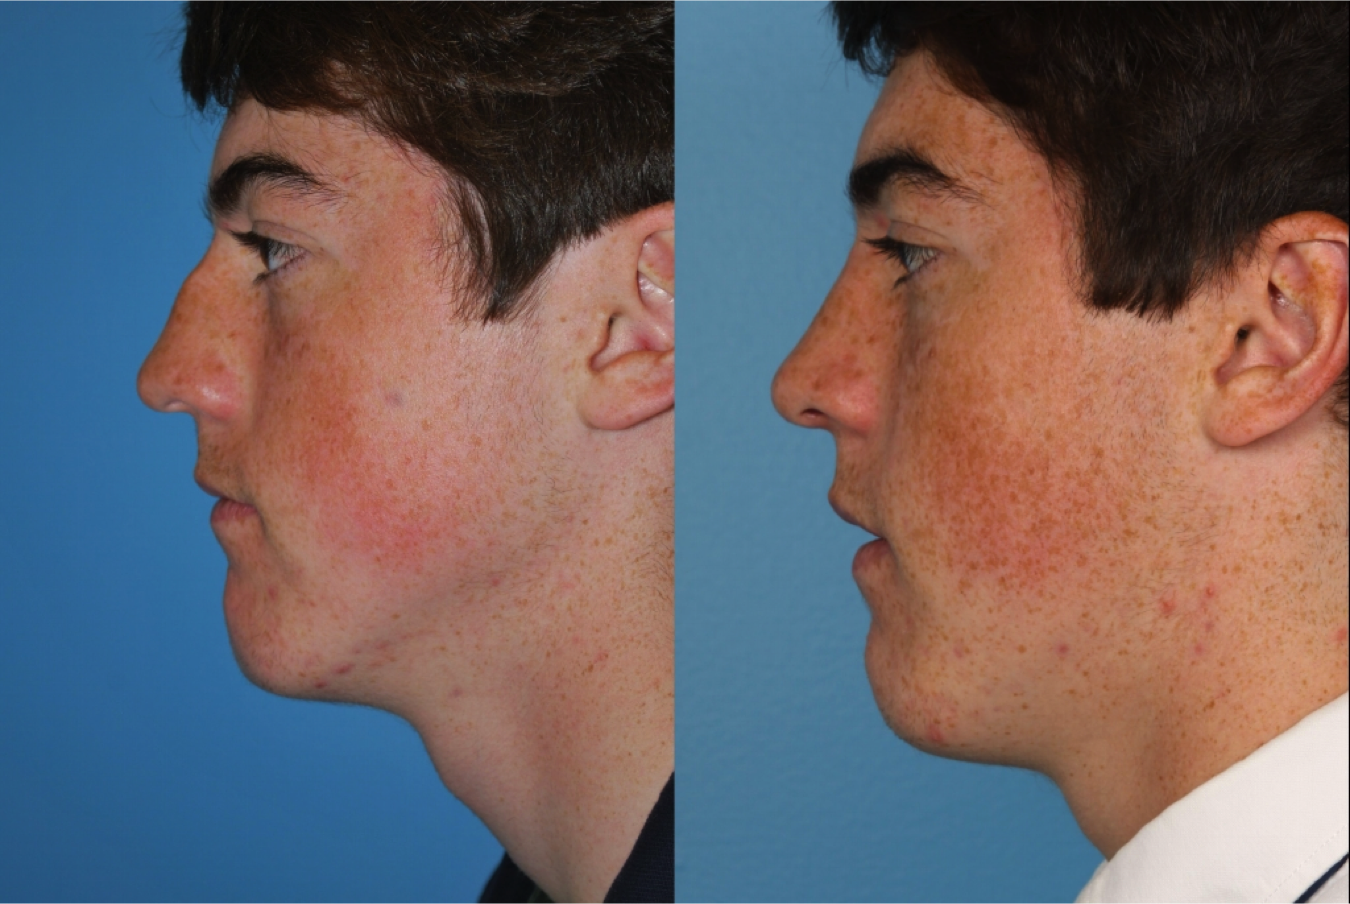 Winnetka Rhinoplasty Doctors